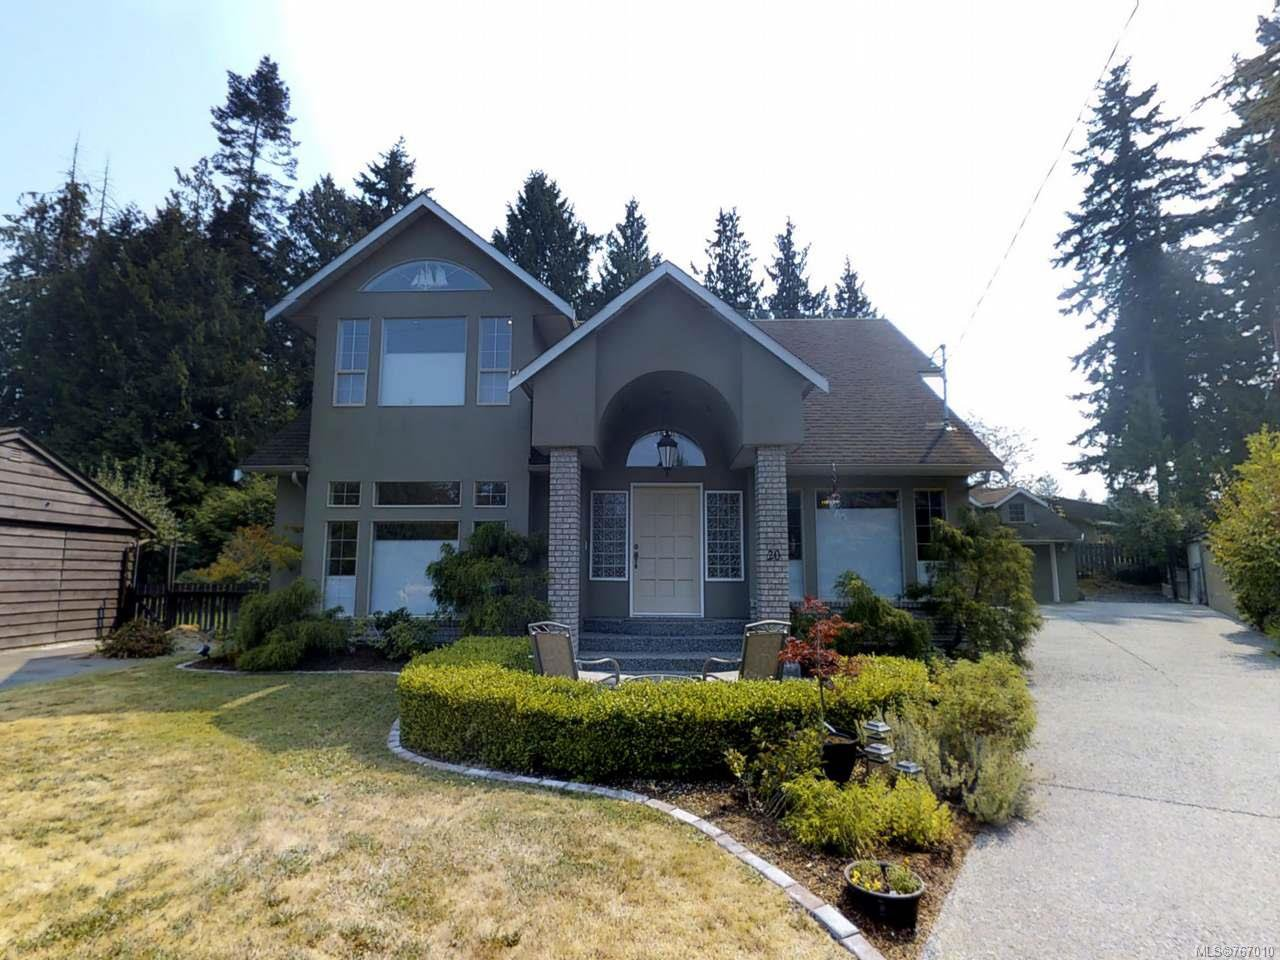 Main Photo: 20 WOODLAND DRIVE in PARKSVILLE: PQ Parksville House for sale (Parksville/Qualicum)  : MLS®# 767010